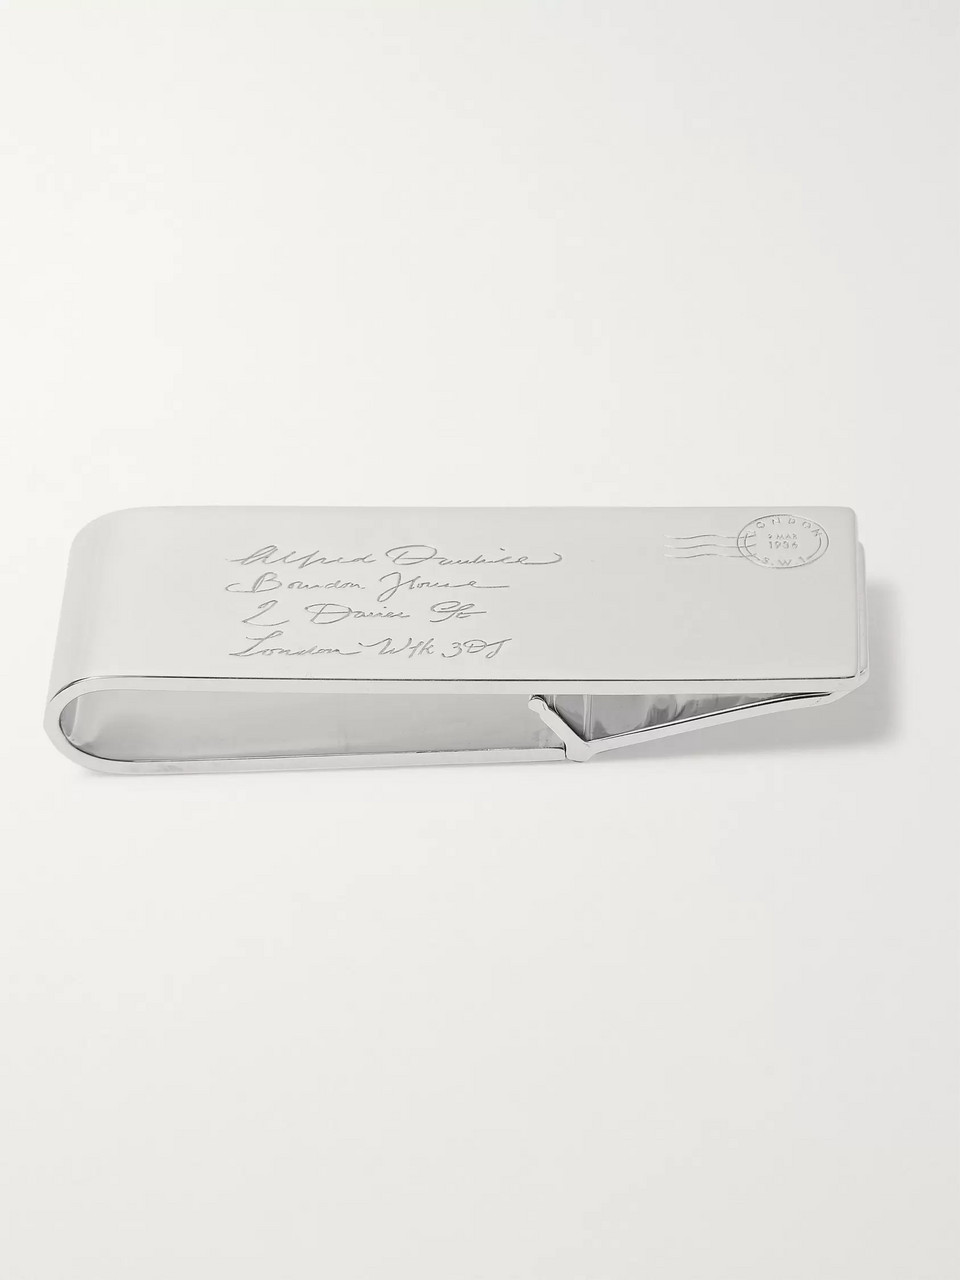 Dunhill Engraved Sterling Silver Money Clip